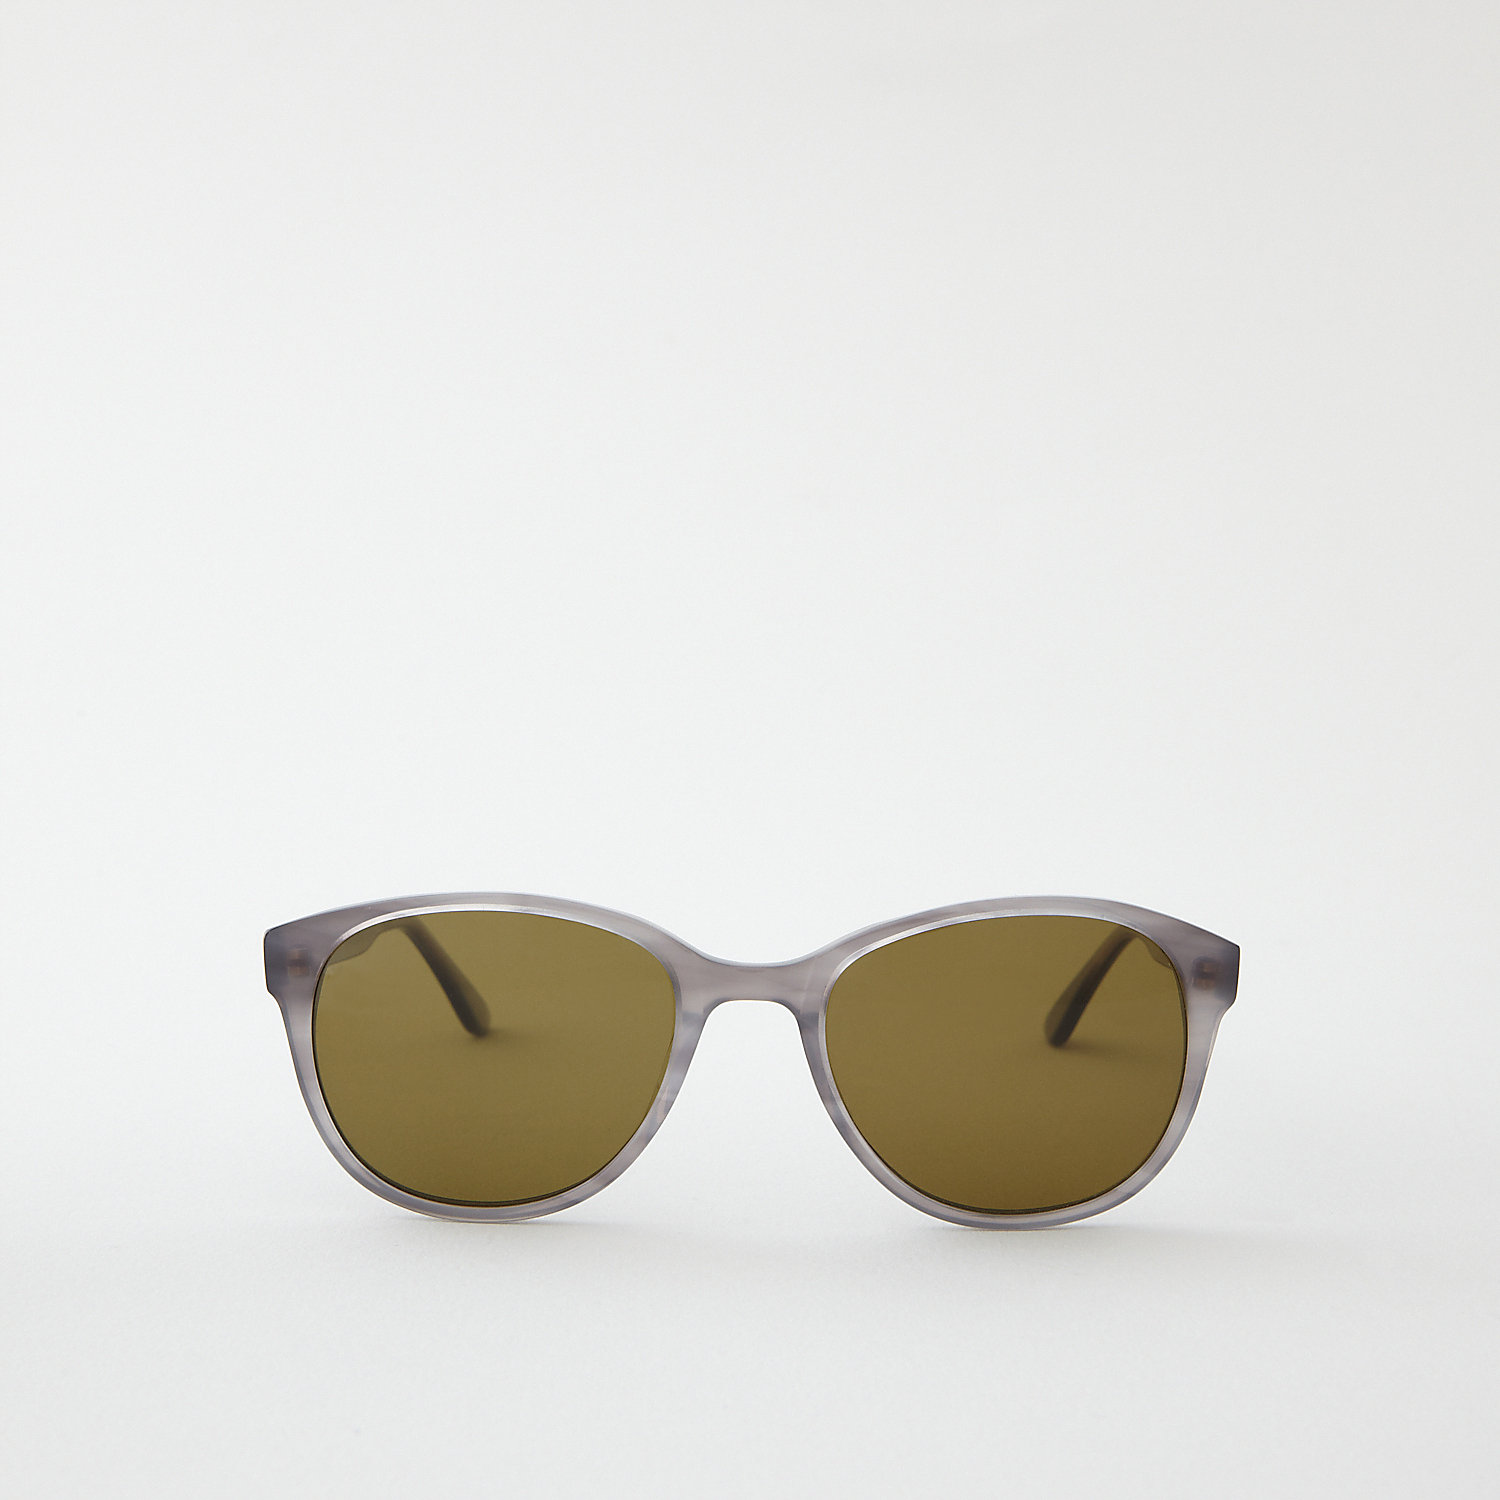 GRAHAM SUNGLASSES - GREY CRYSTAL